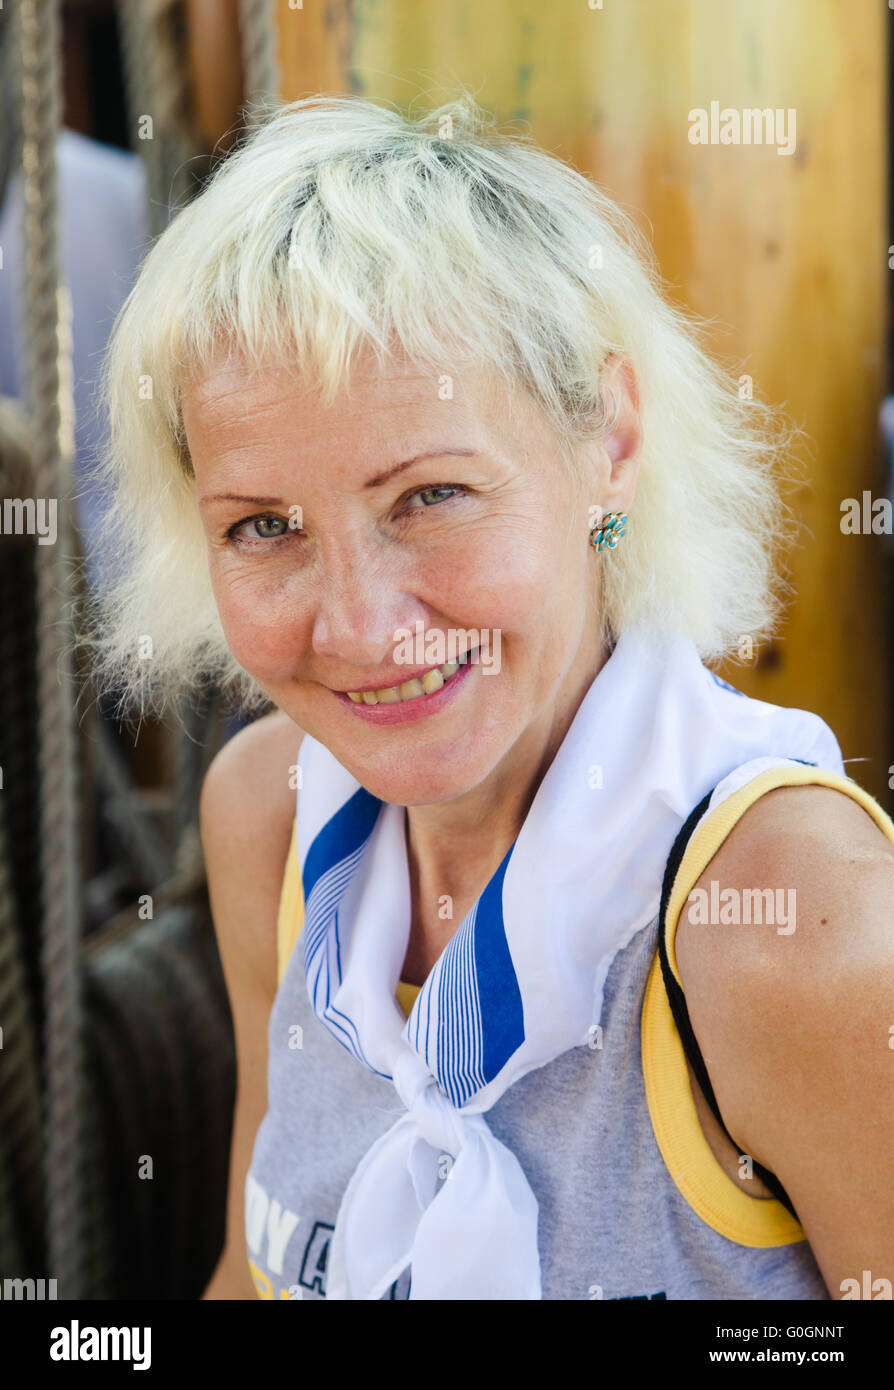 Portrait of a cheerful woman on sailboat - Stock Image